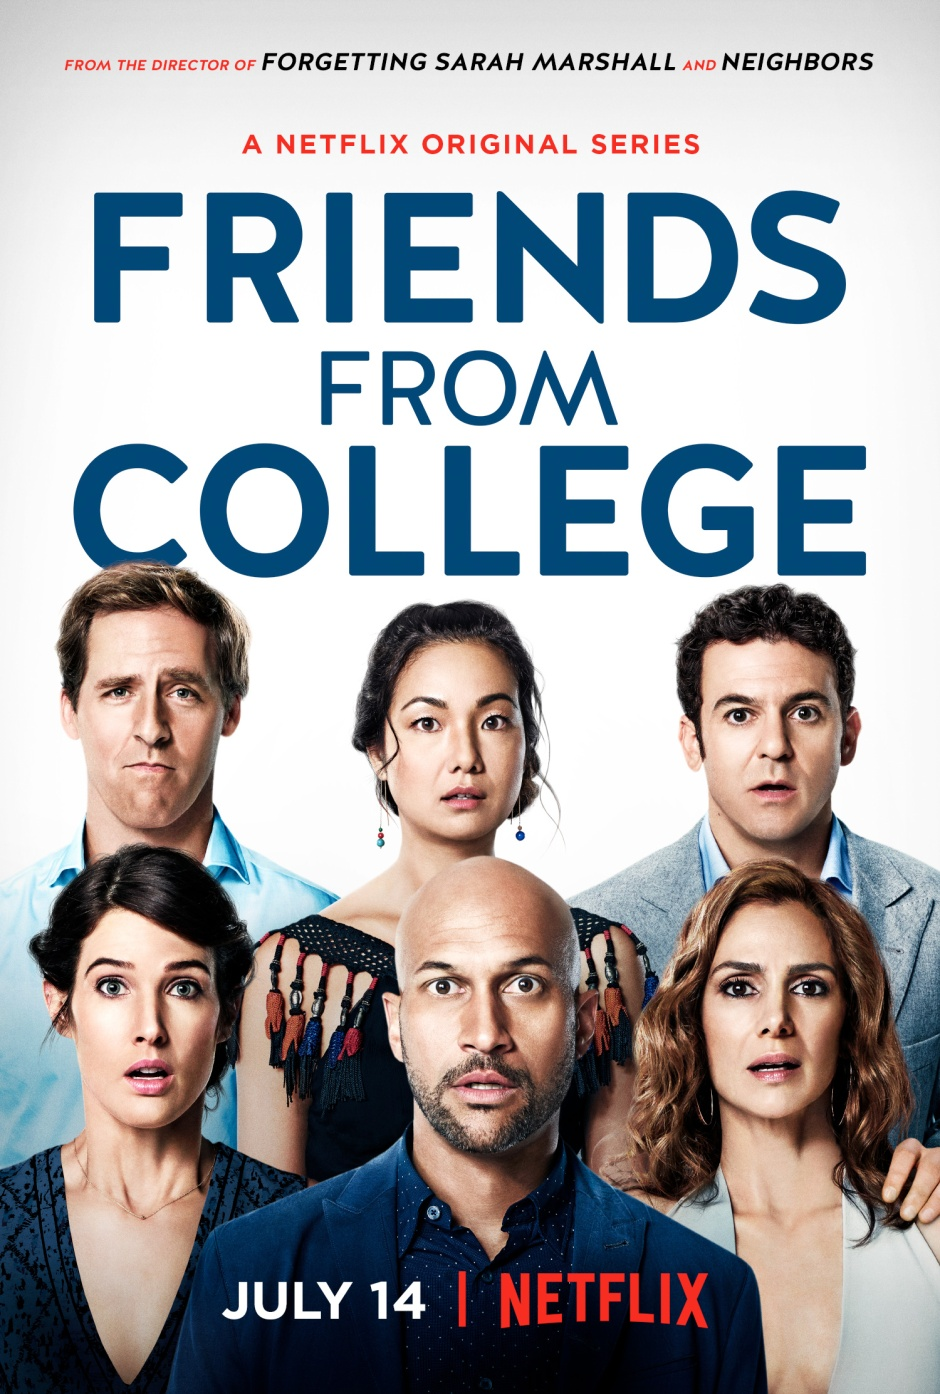 friends-from-college-poster.jpg